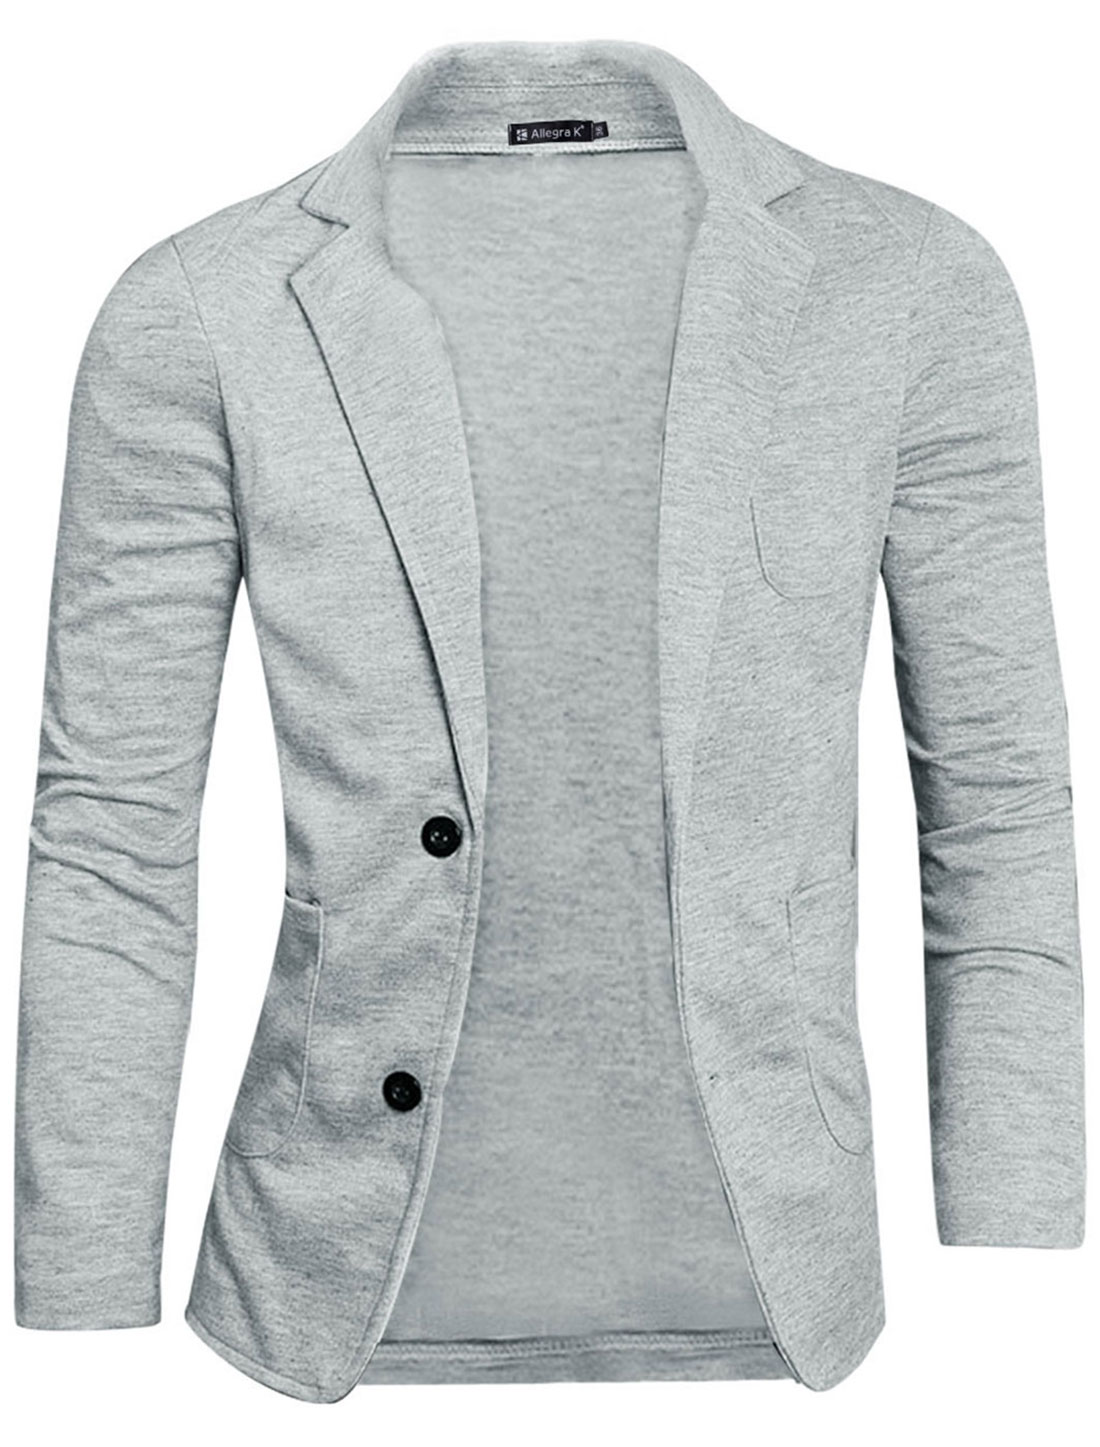 Mens Gray Fashion Simple Design Two Pockets Front Two Buttons Long Sleeve Blazer M